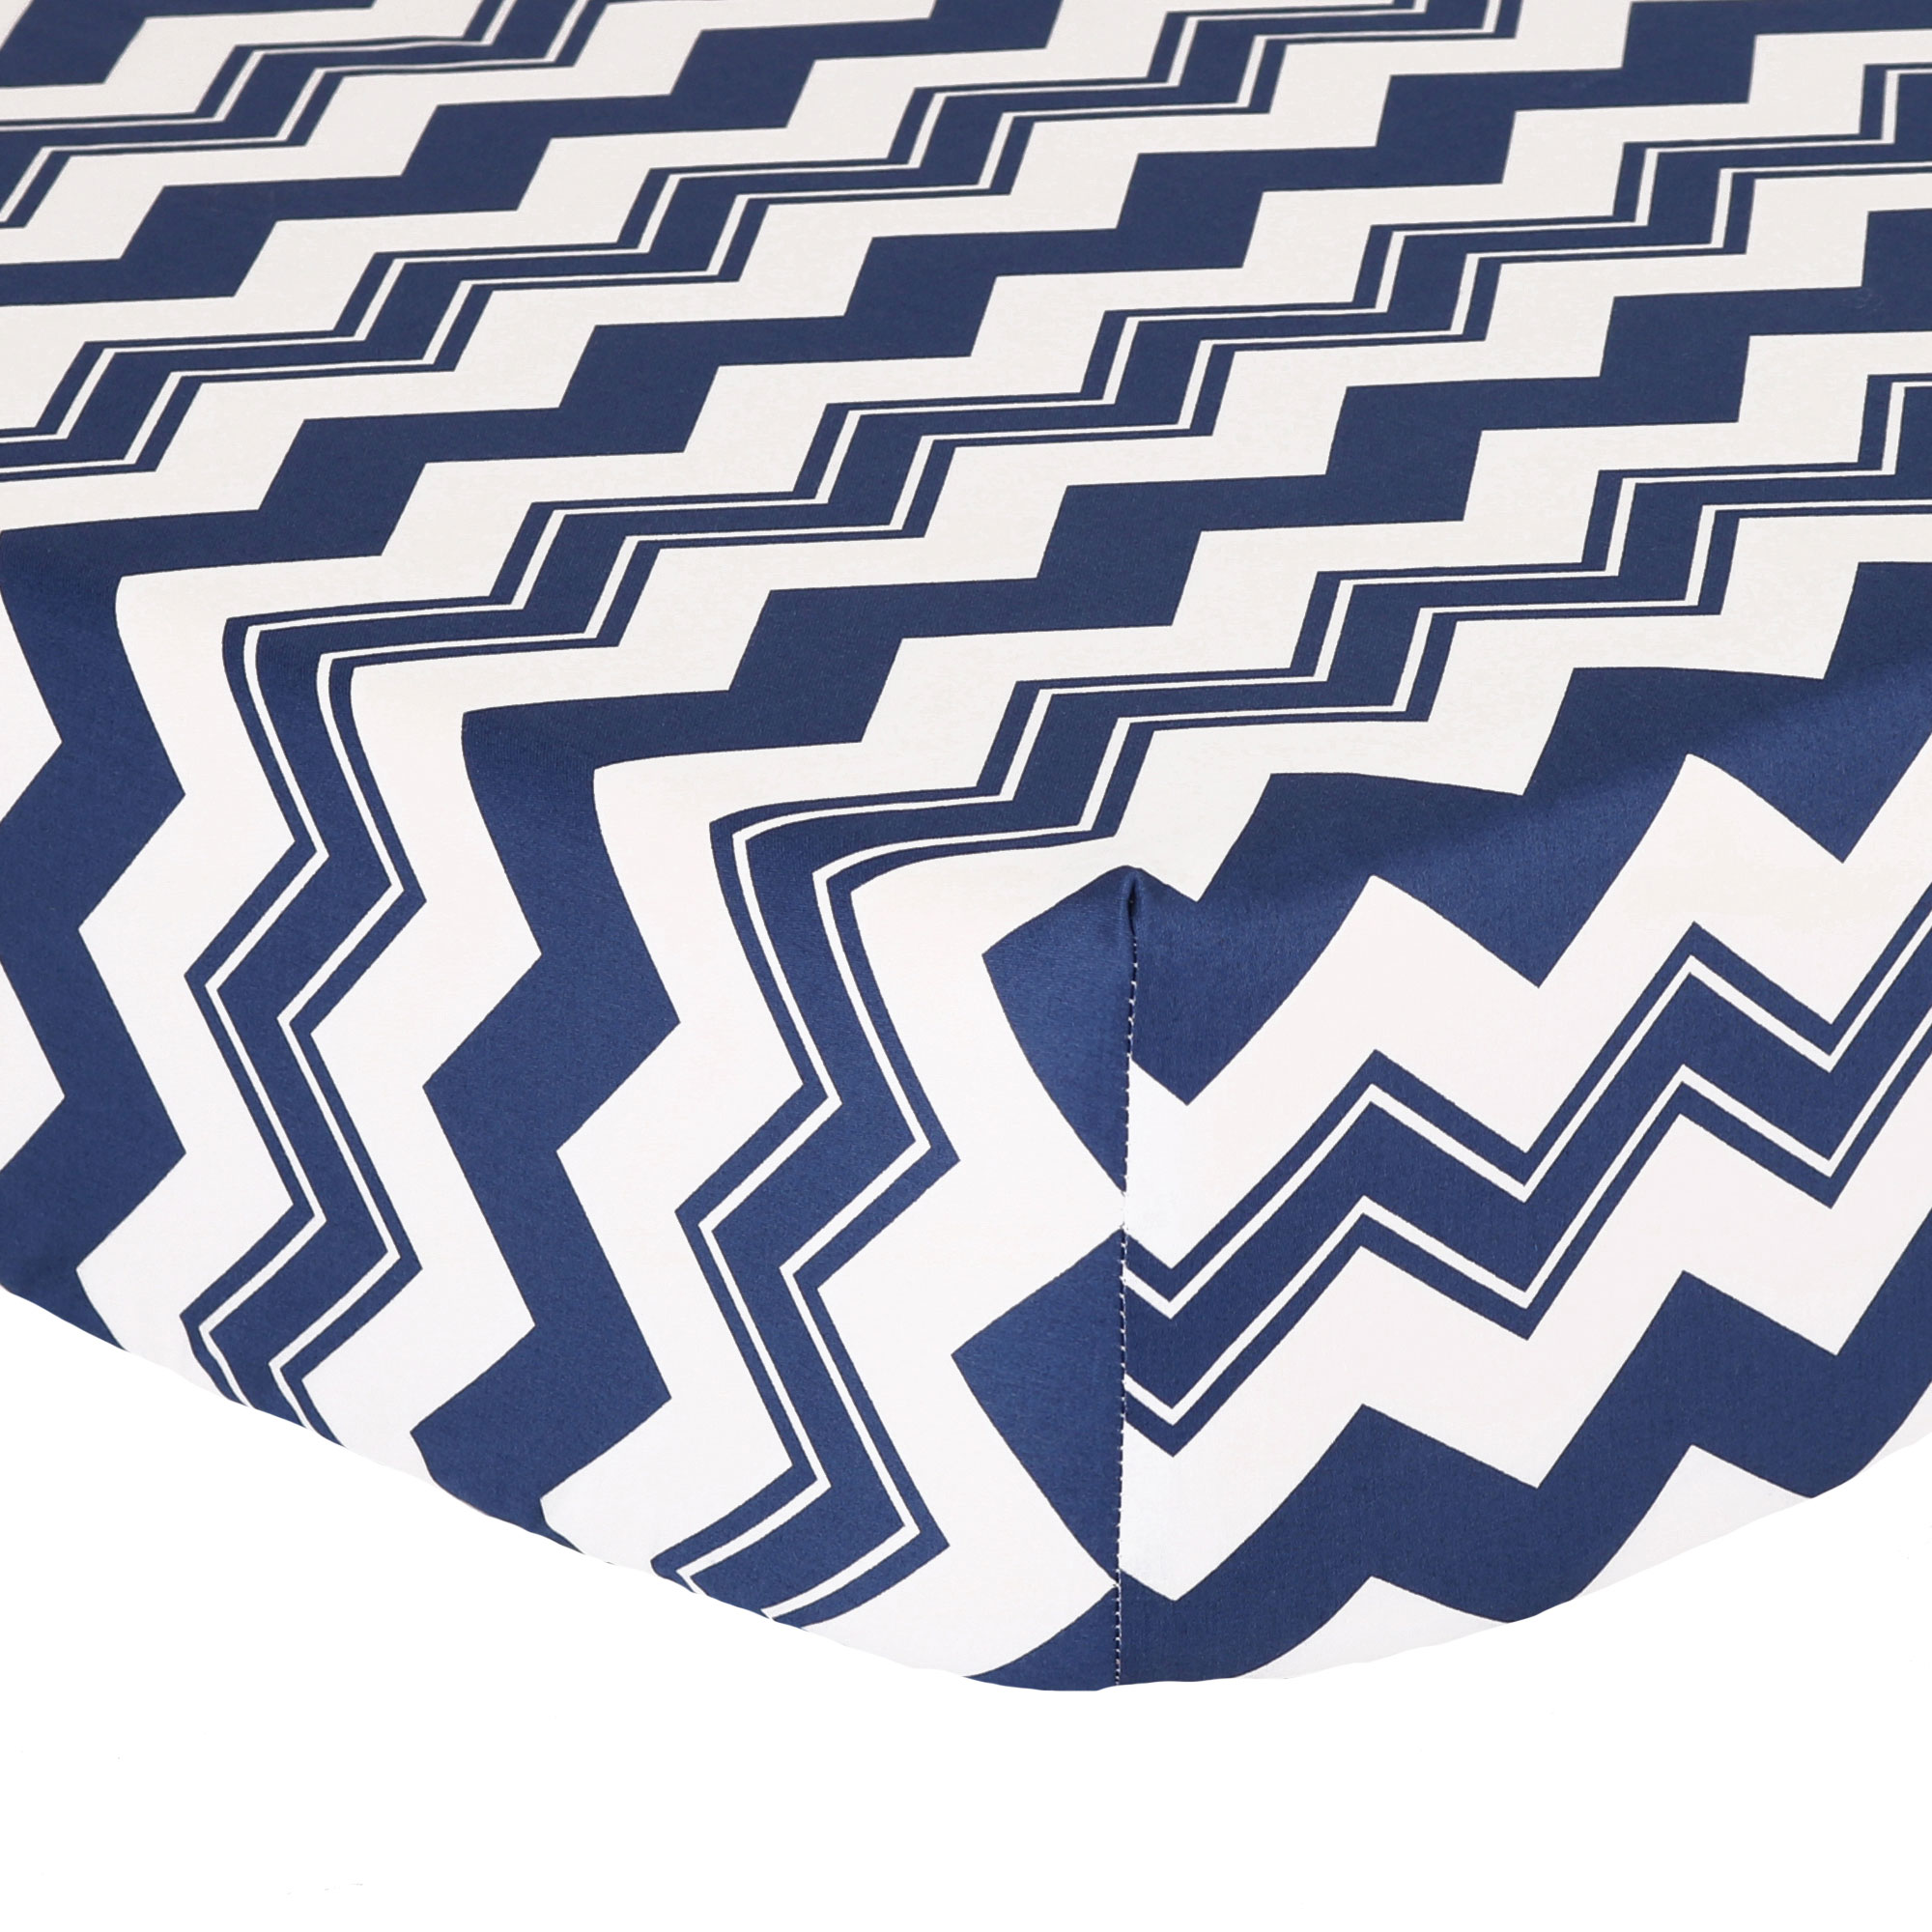 The Peanut Shell Baby Crib Fitted Sheet - Navy Blue Zig Zag Chevron Design - 100% Cotton Sateen, Fits Standard 52 by 28 Inch Mattress